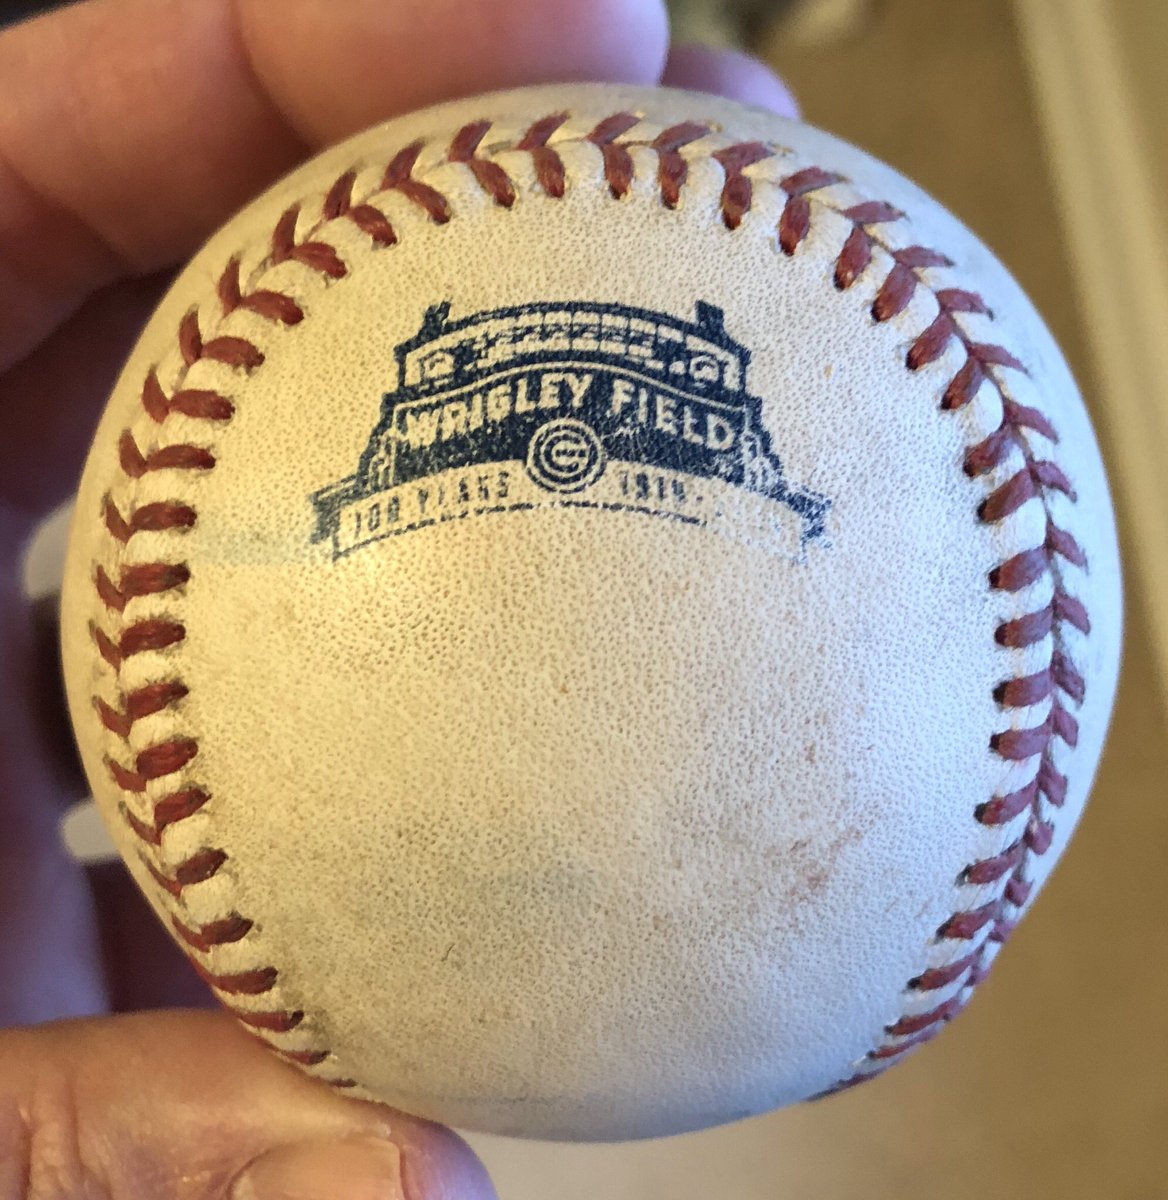 Looking forward to #johnbakerday 2019 and meeting @manbearwolf for the first time. I've been holding my #gameused ball from 7/29/14 forever. Should be fun! @SonRanto @mattsaltzman @GmanTavern